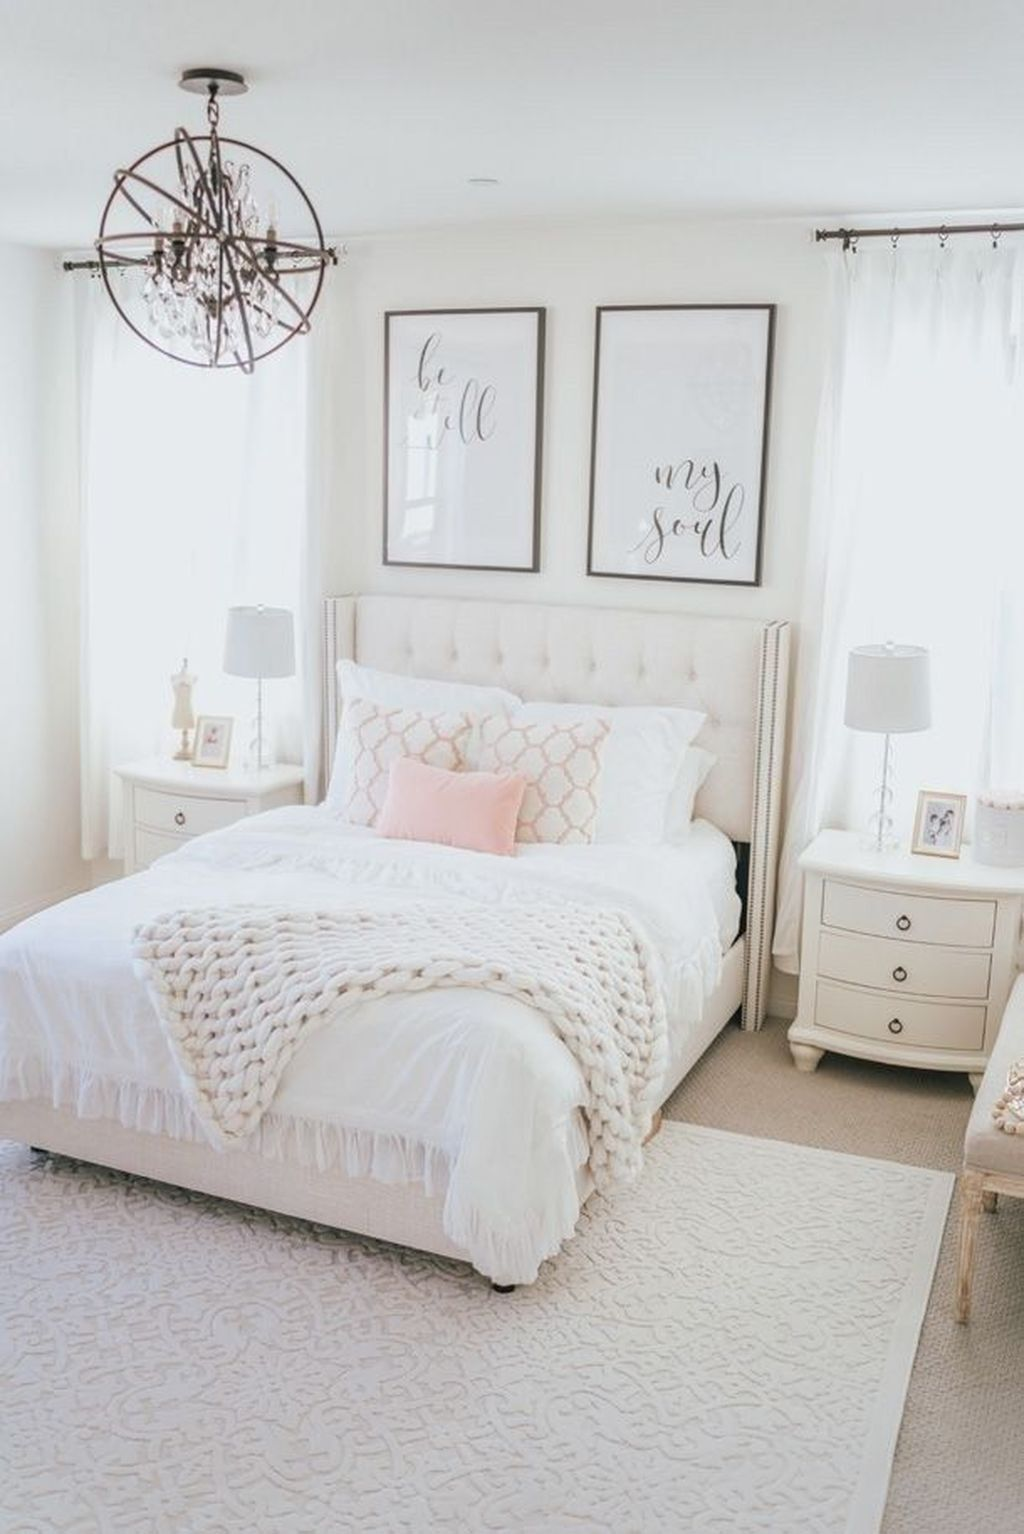 40+ Magnificient Bedroom Decorating Ideas For Your Apartment